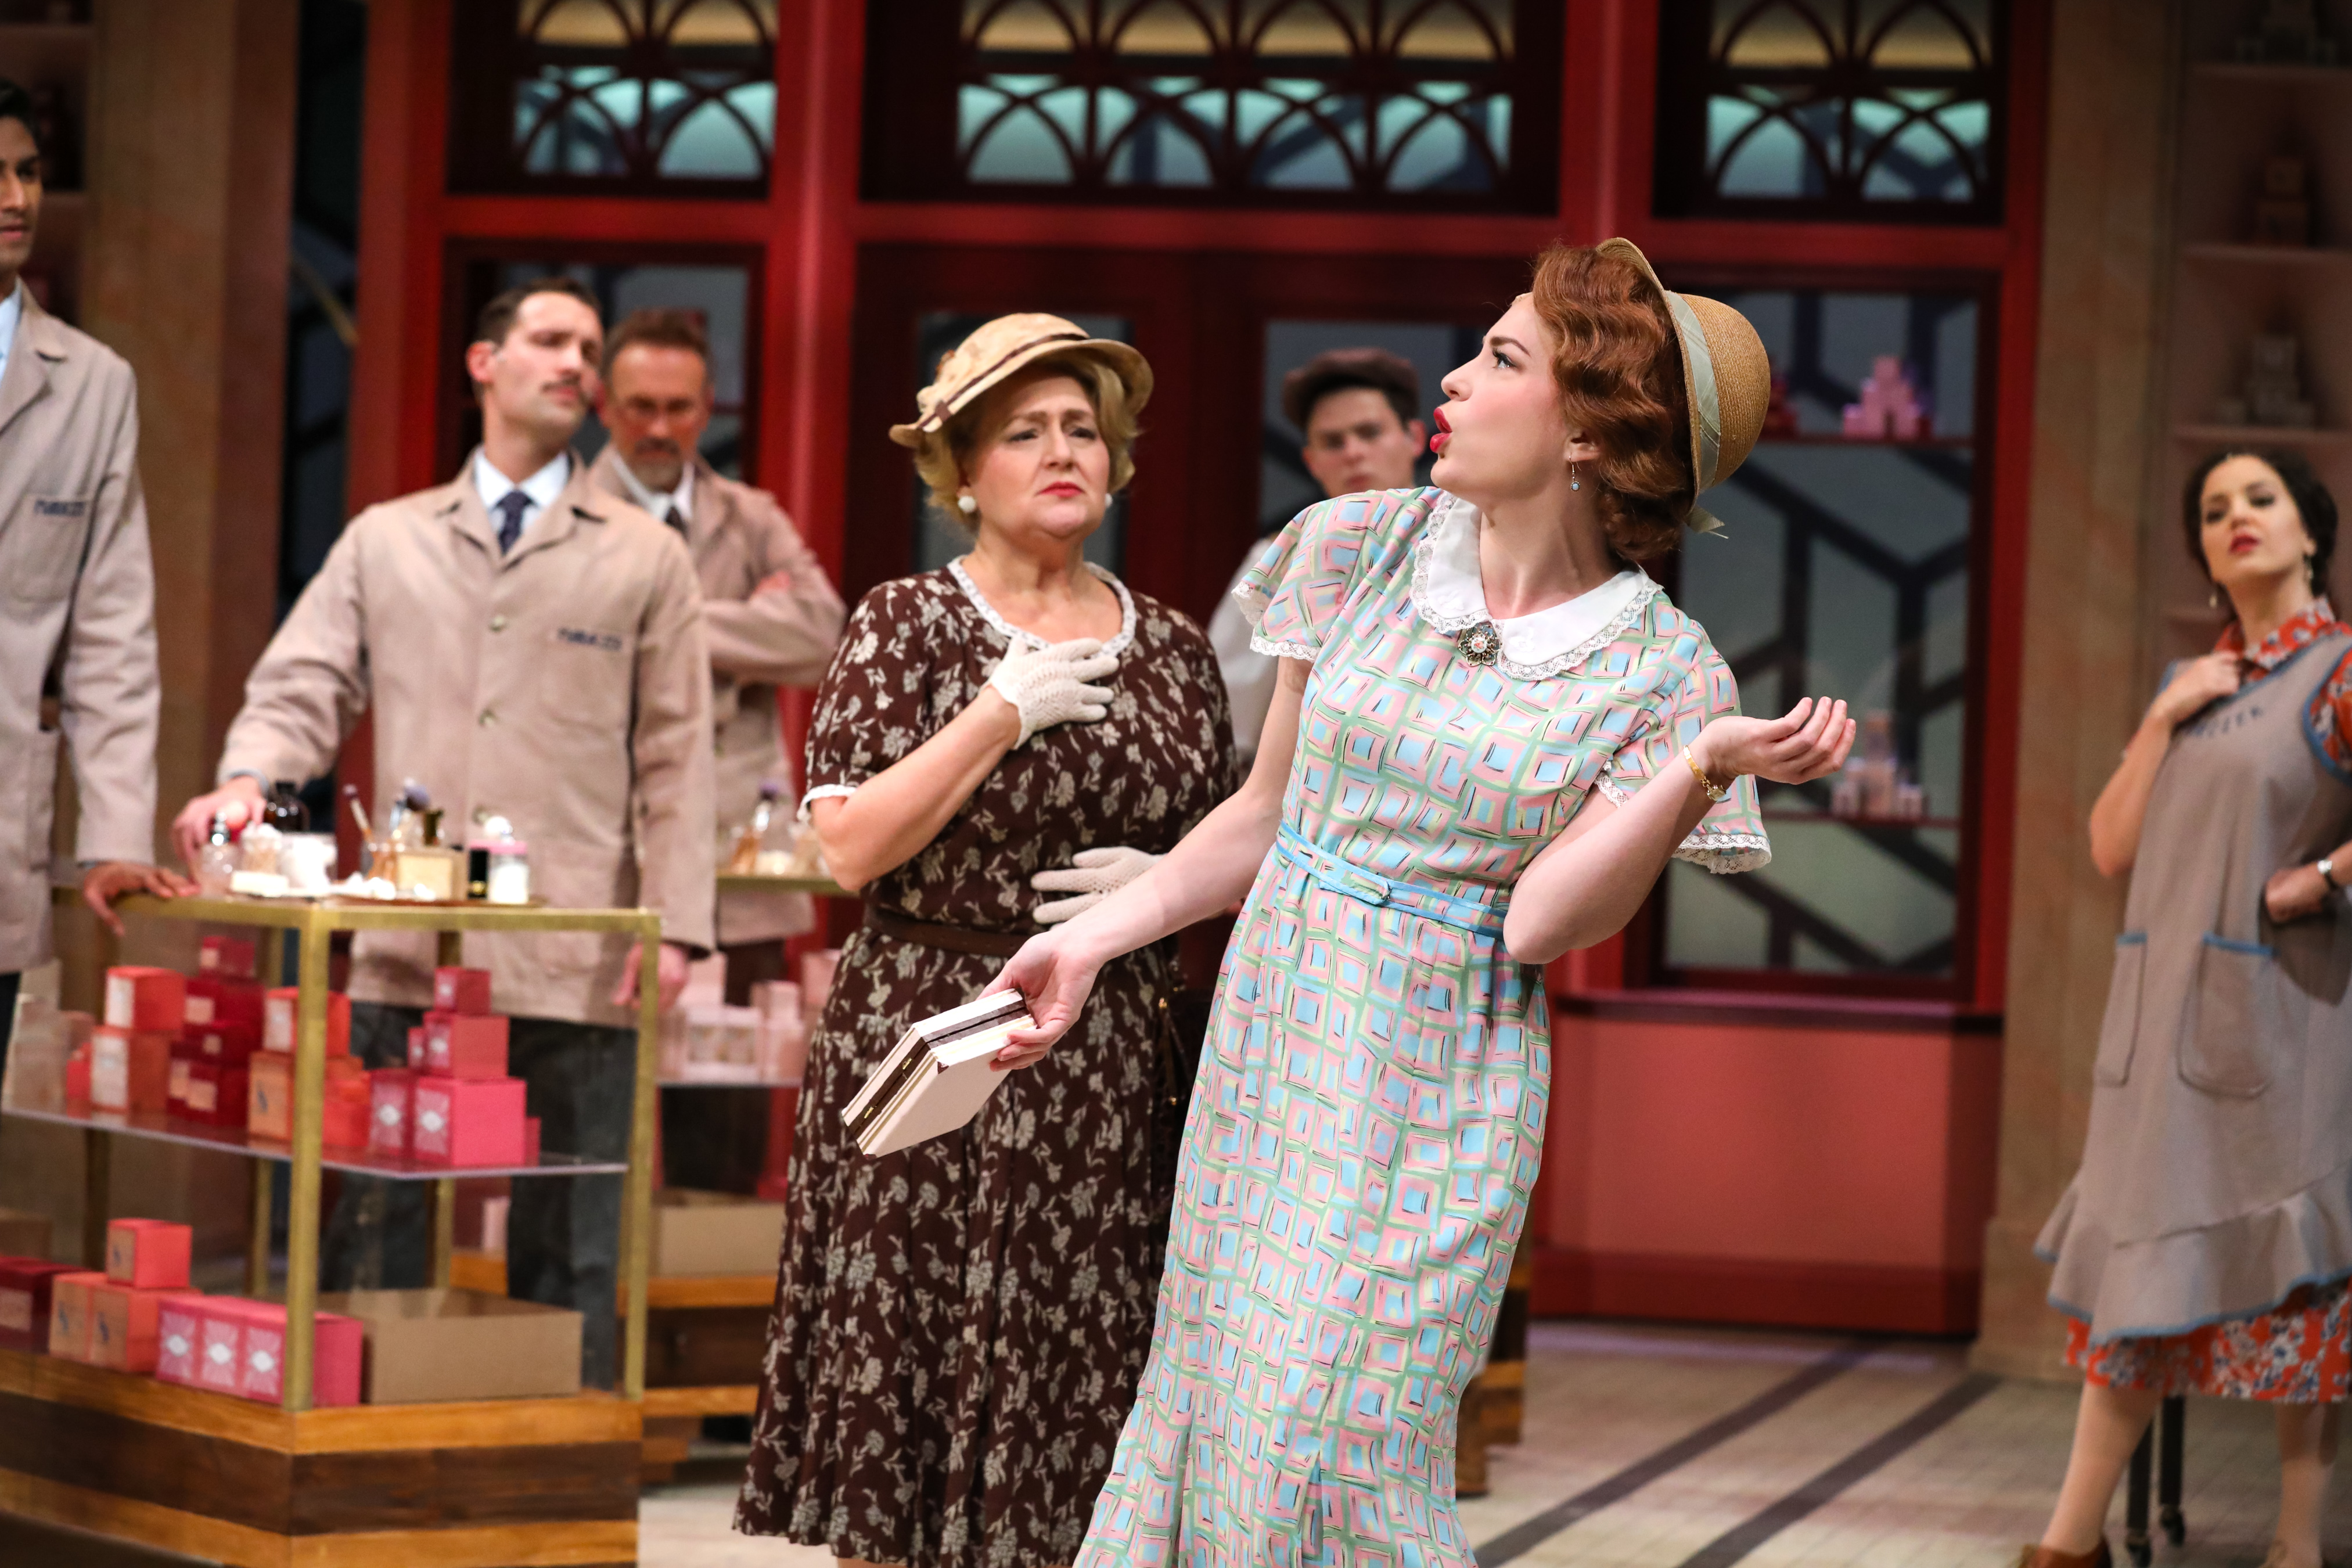 Jenny Latimer as Amalia with Julia Gibson and the cast of PlayMakers' 'She Loves Me.' Directed by Kirsten Sanderson. Costume design by Bobbi Owen. (HuthPhoto)